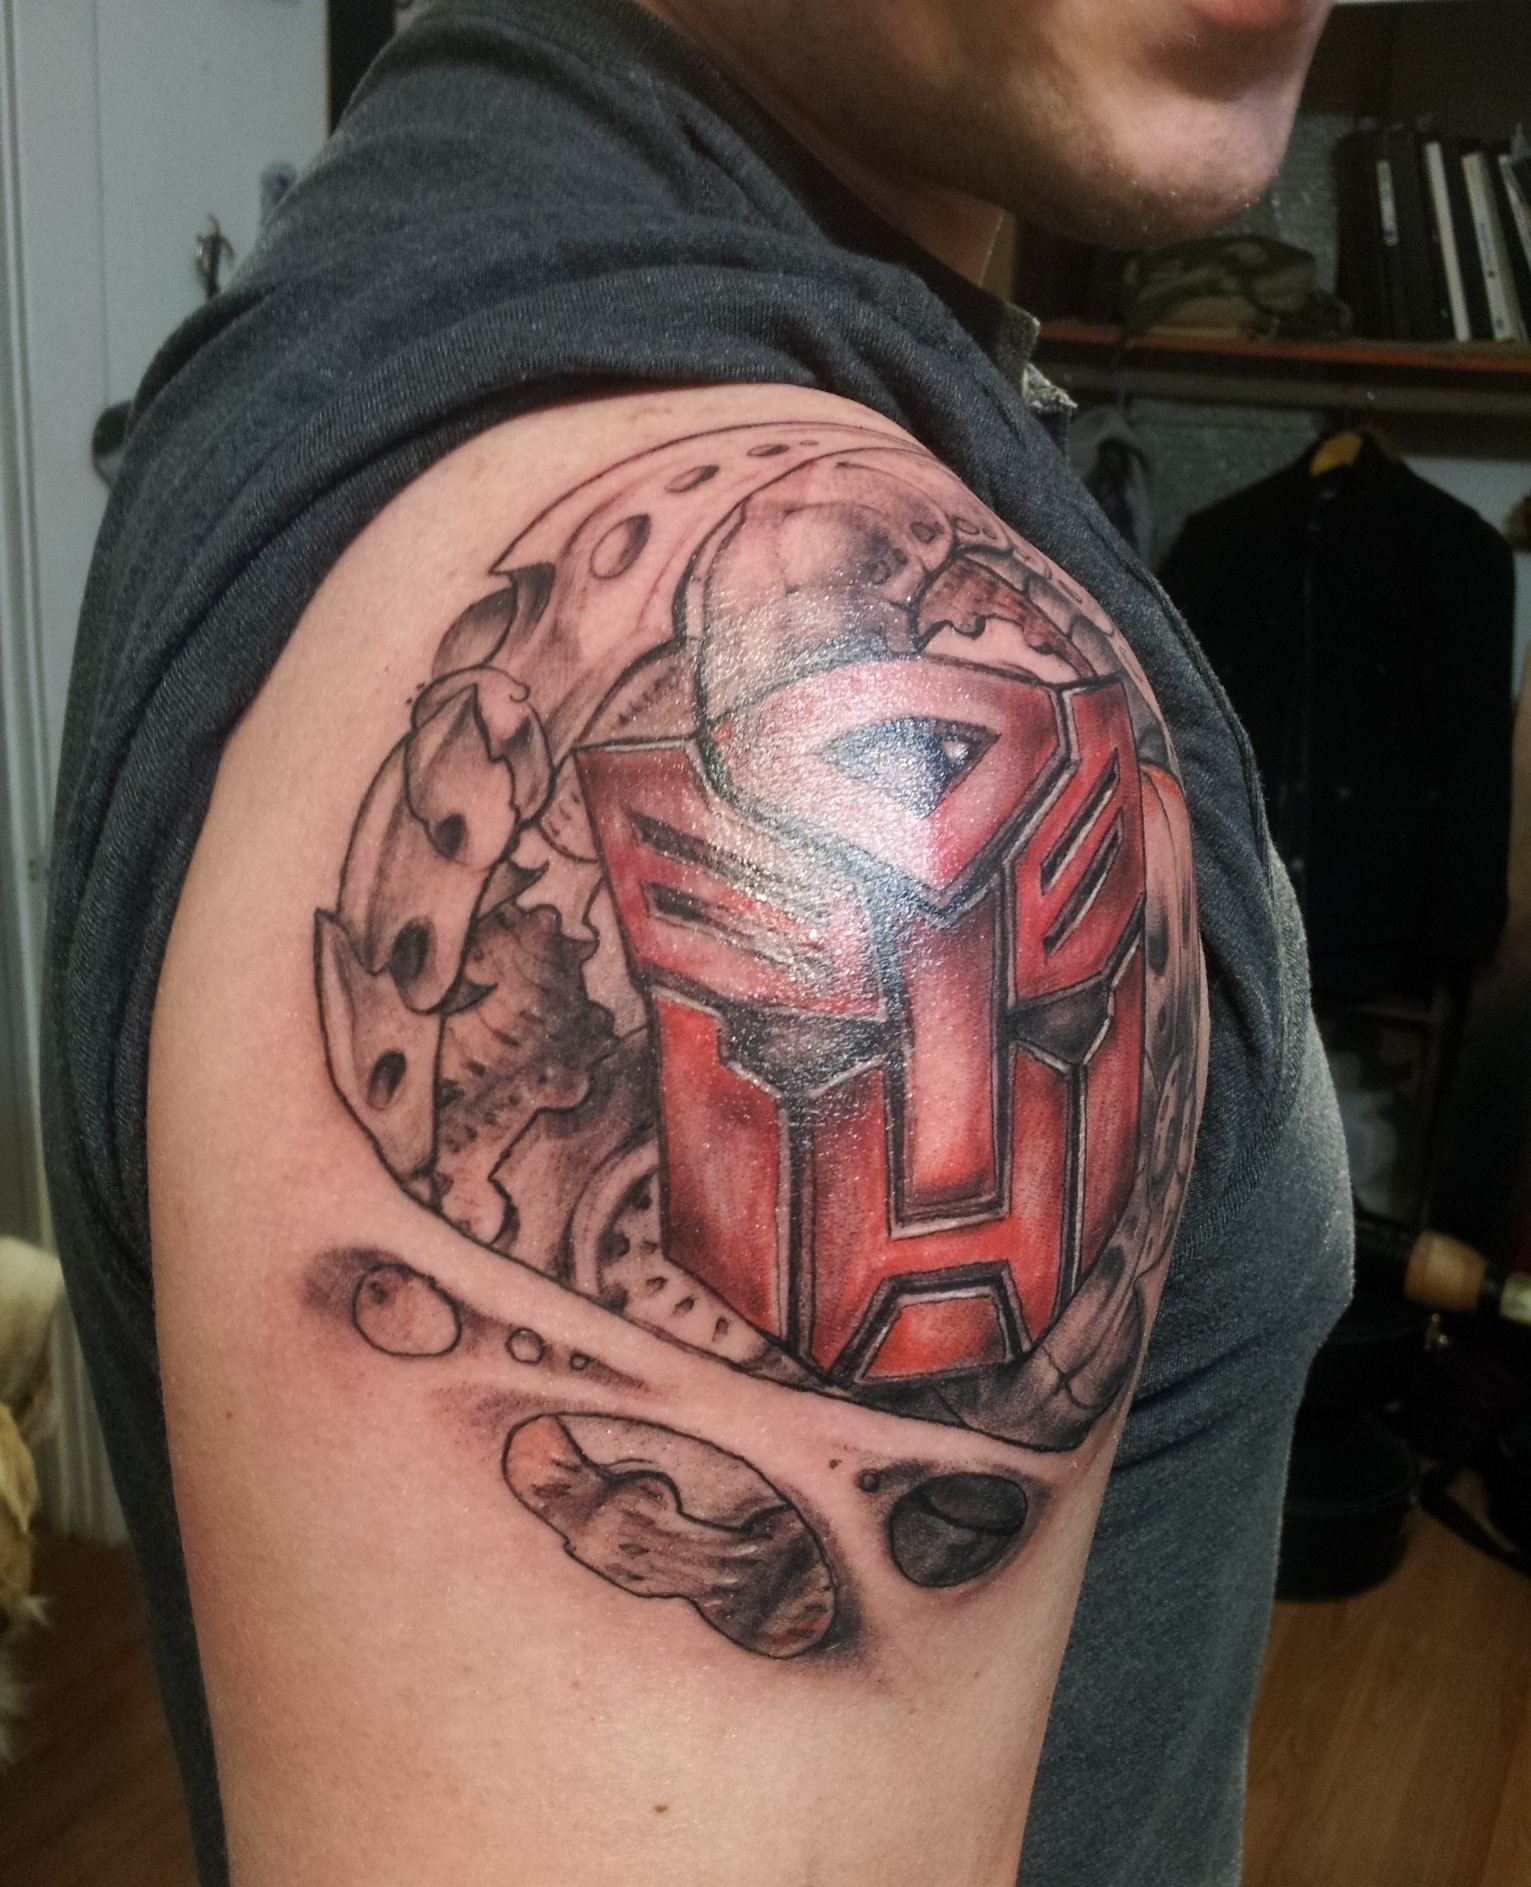 Transformers Tattoos Designs Ideas And Meaning Tattoos Ideas And Designs